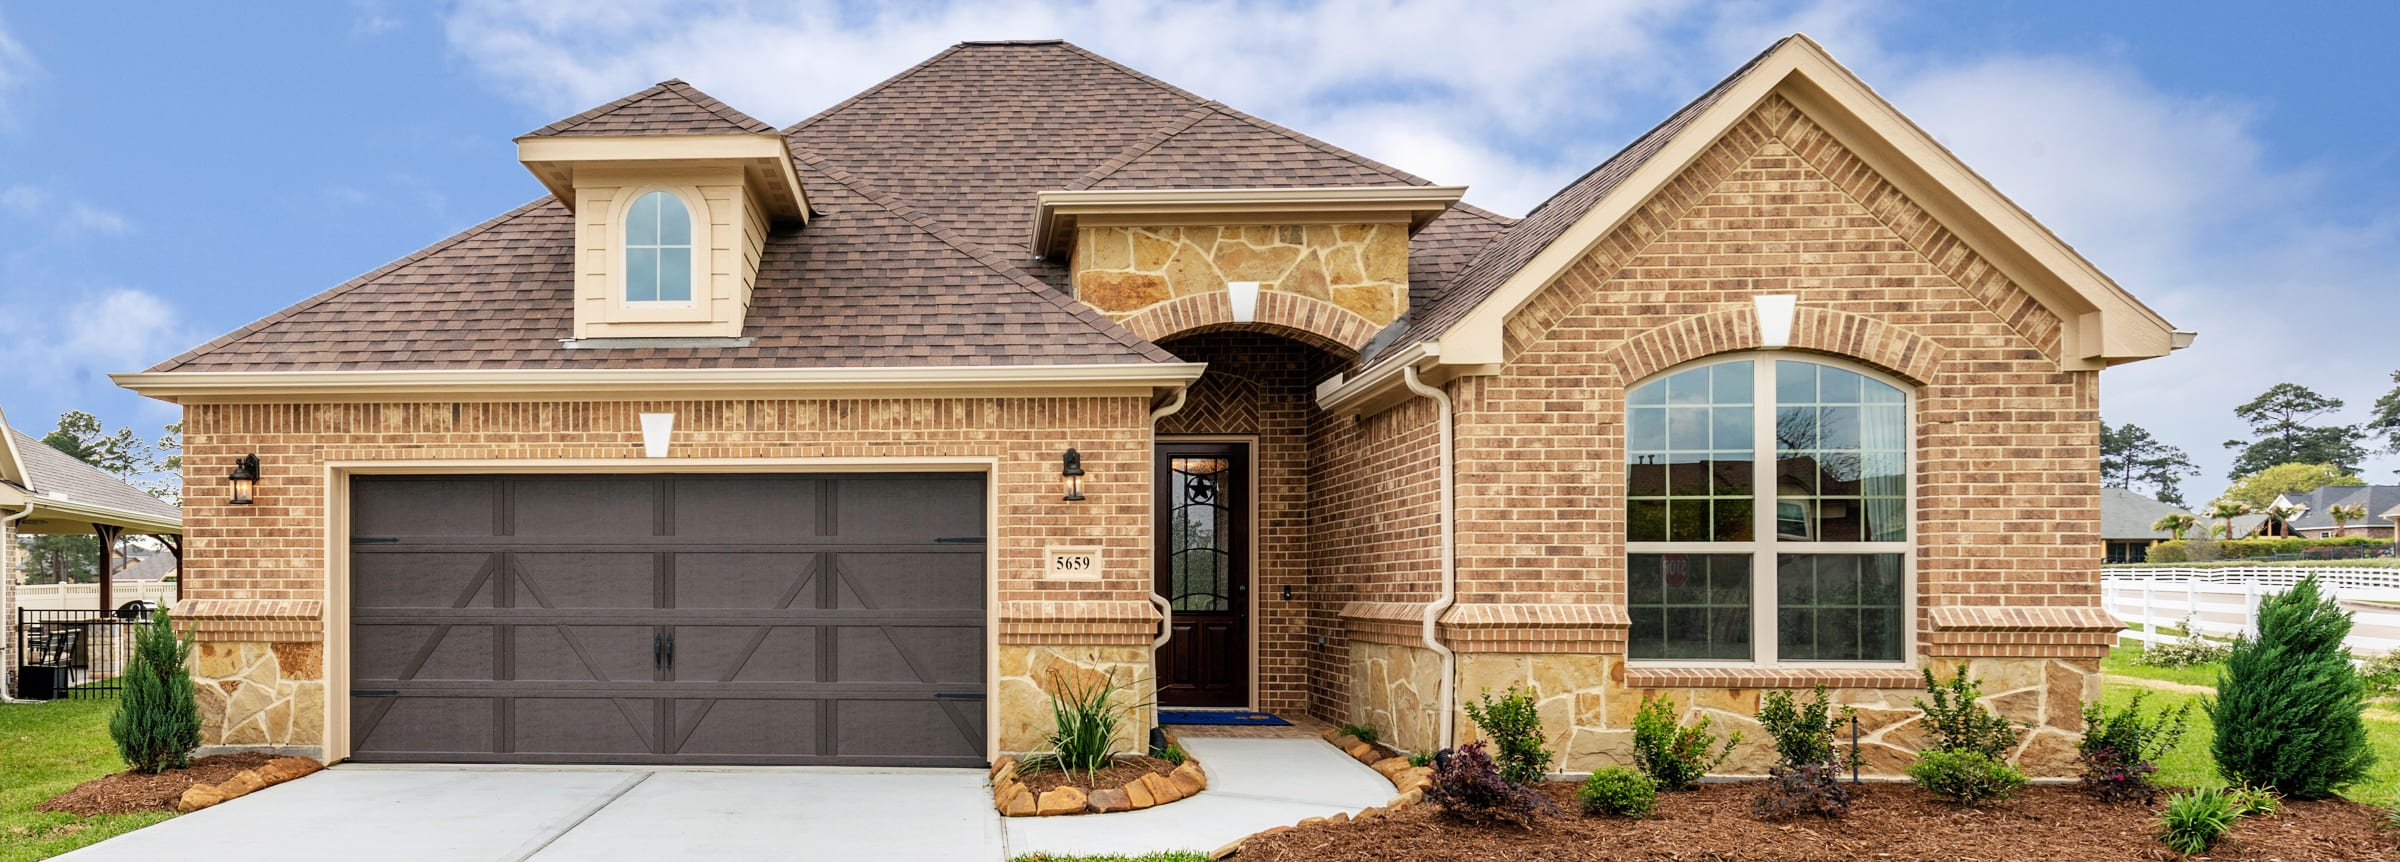 Villas at White Oak Homes